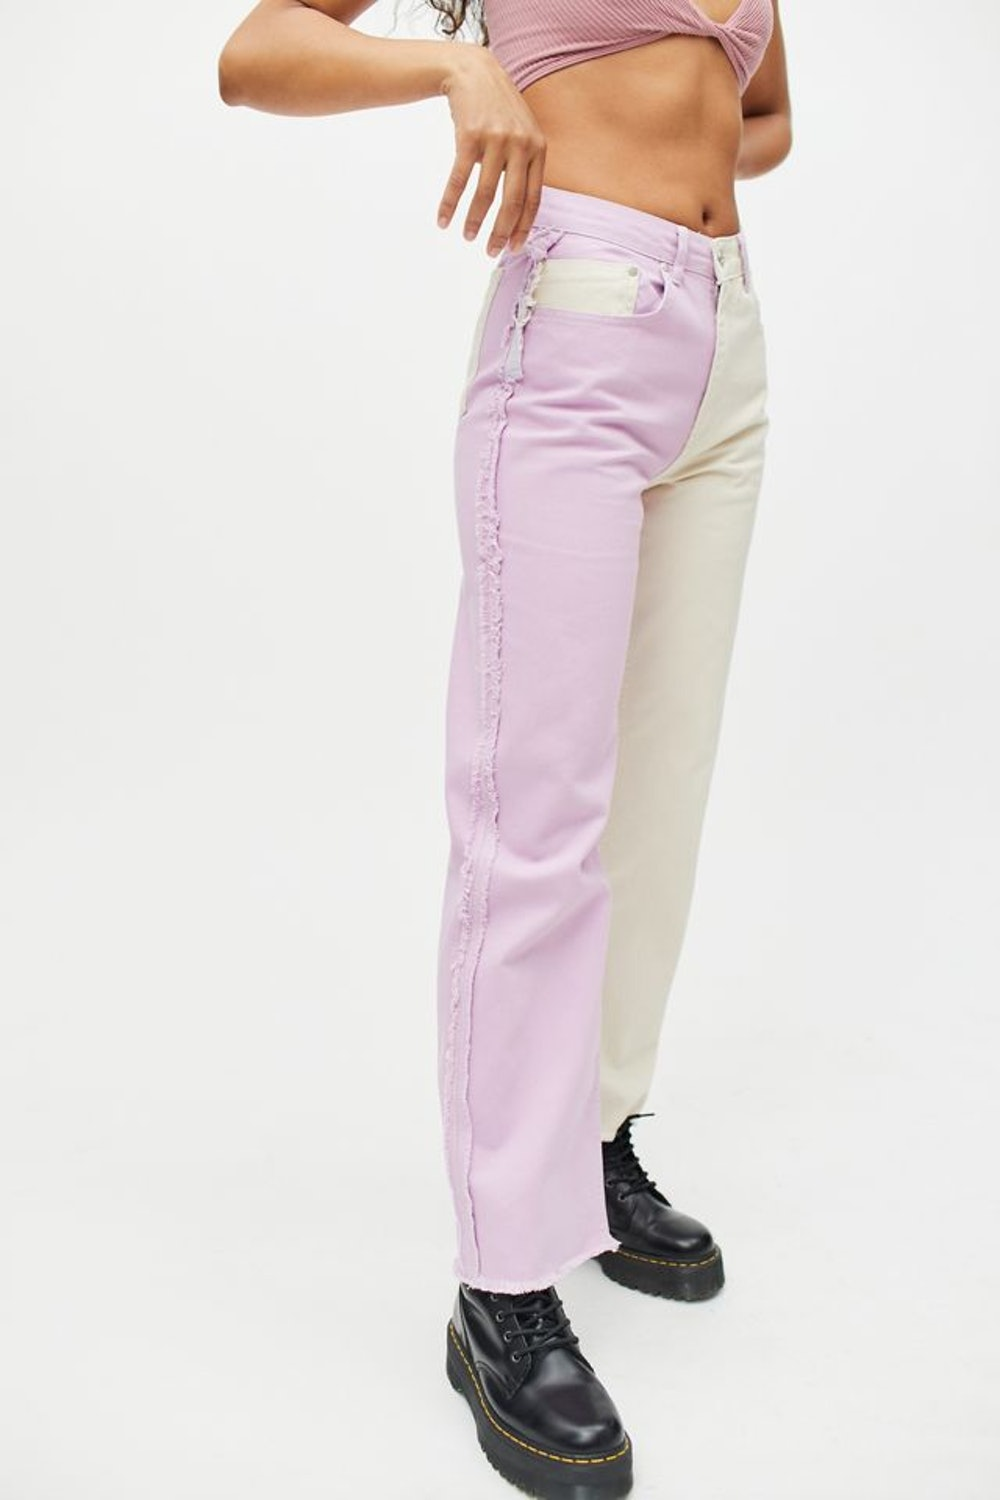 The Ragged Priest Two-Tone Wonder Jean